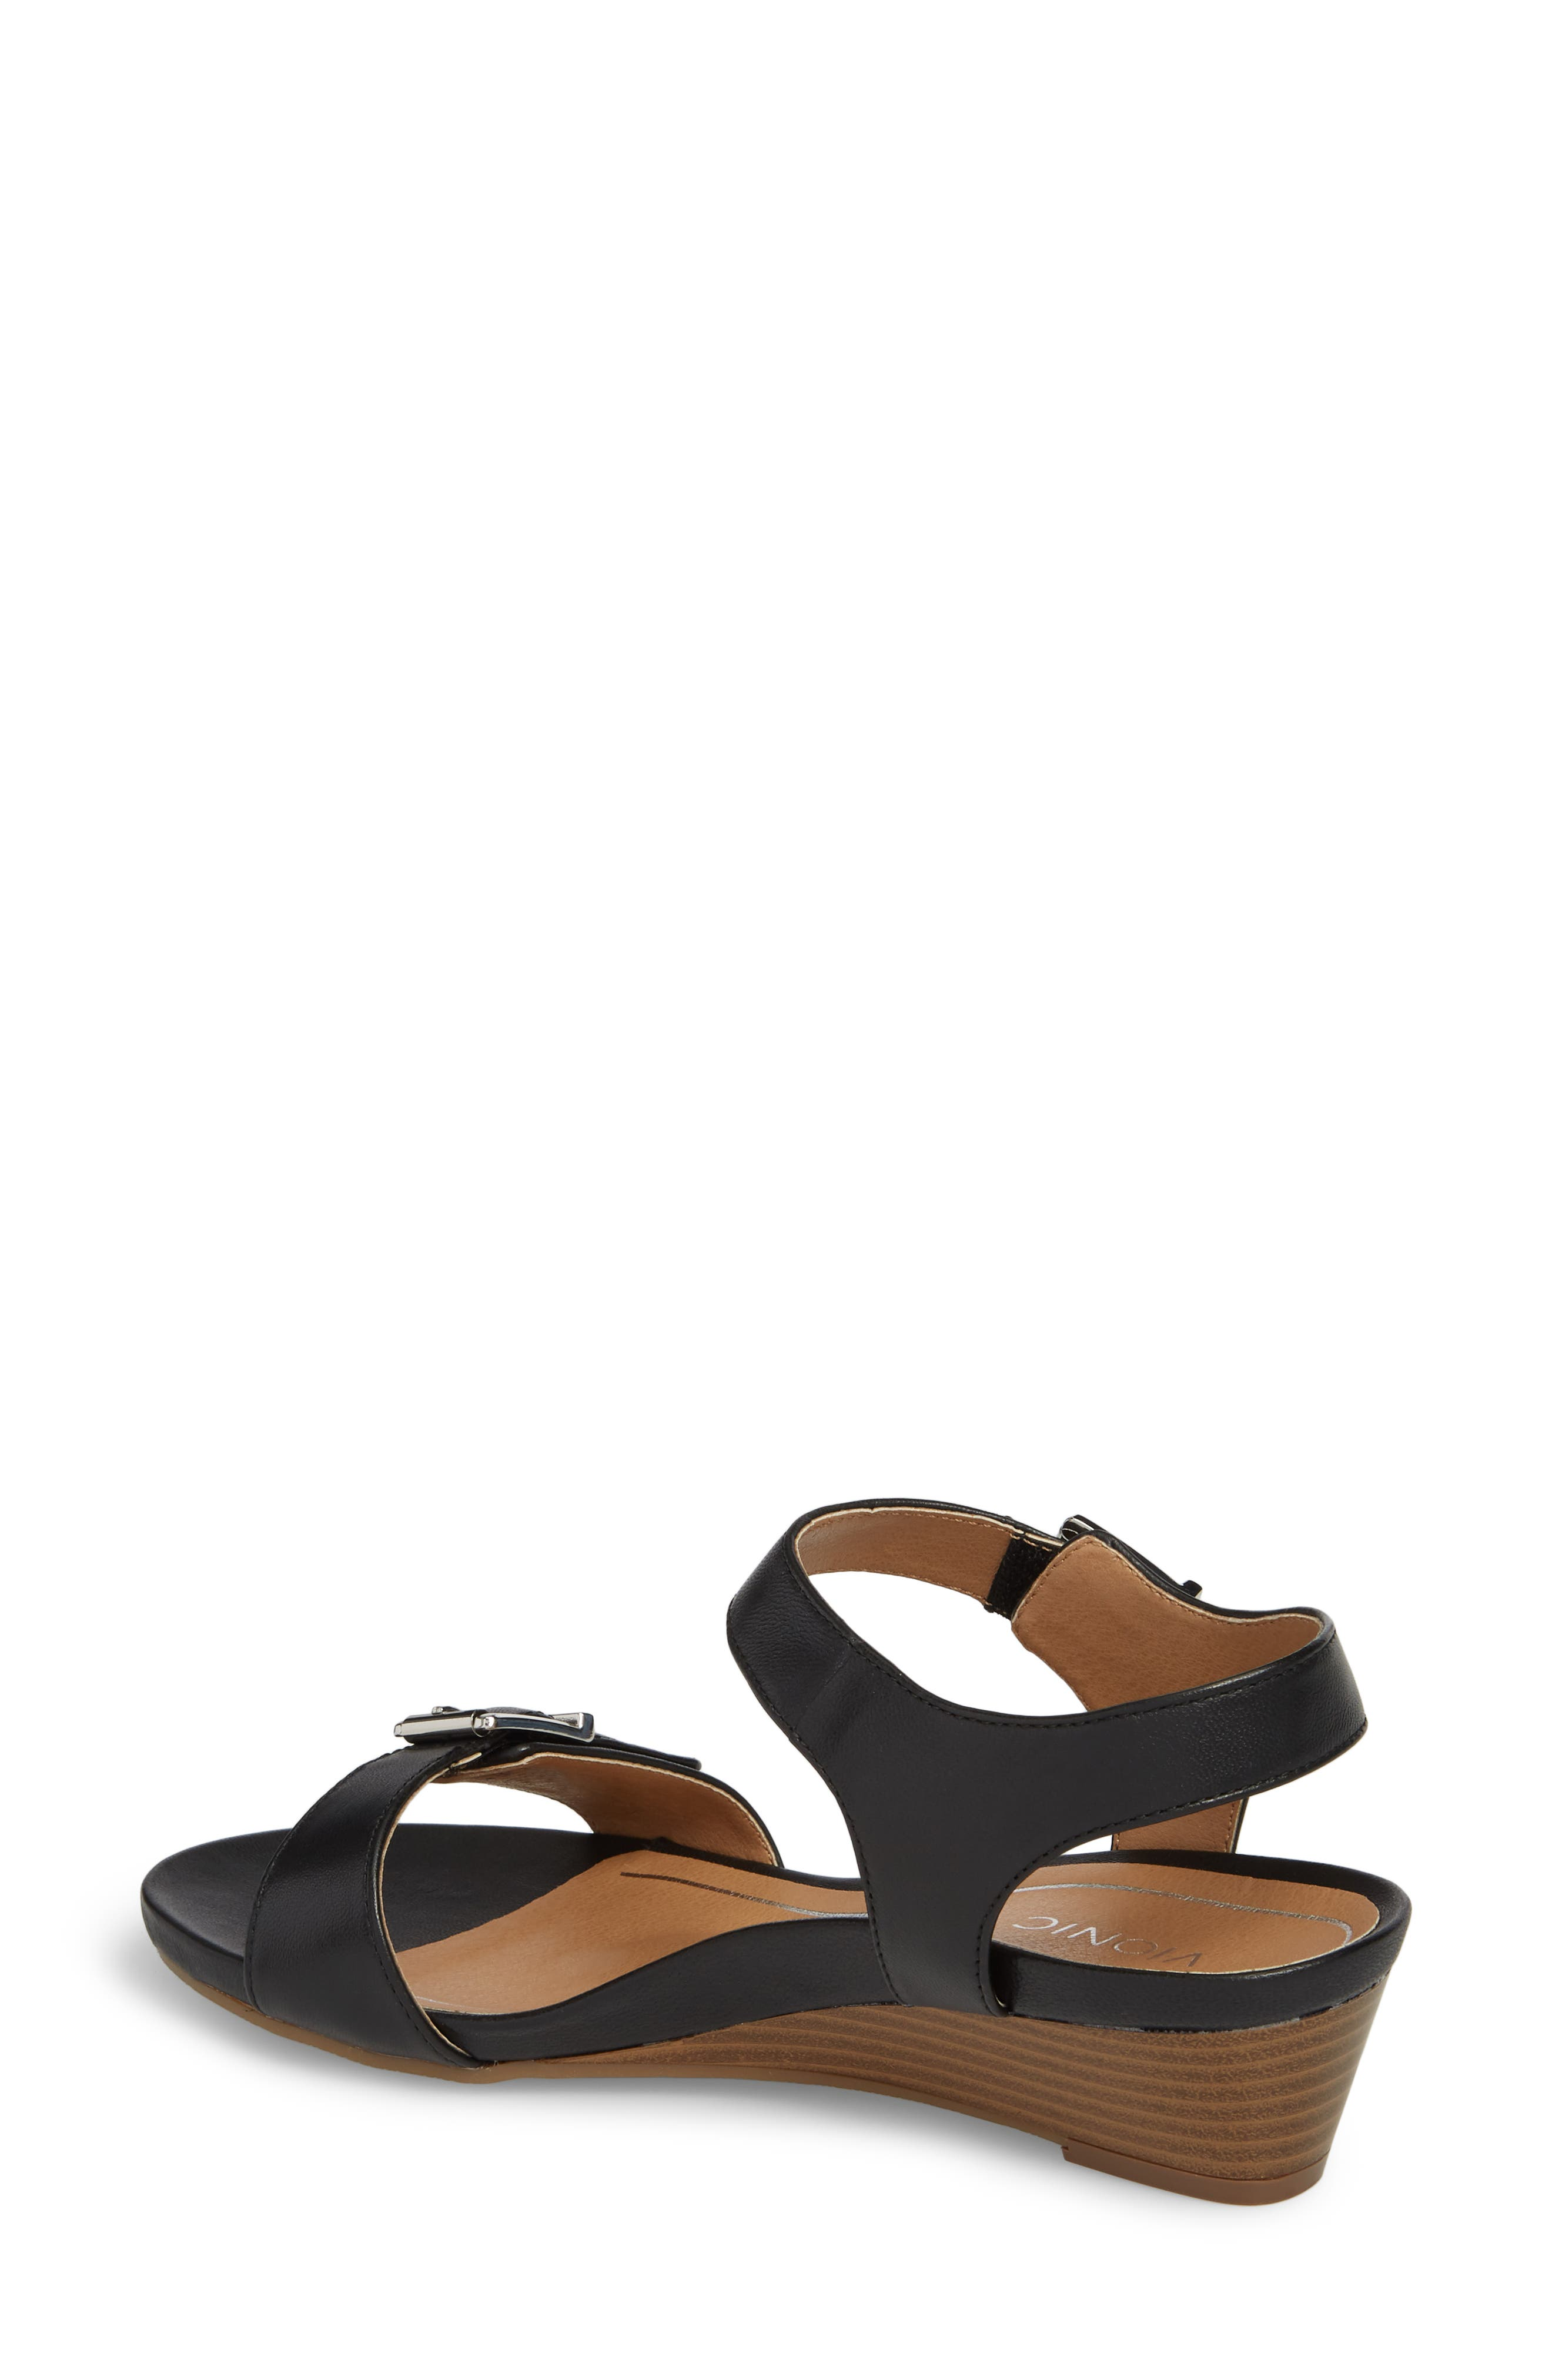 Frances Wedge Sandal,                             Alternate thumbnail 2, color,                             001